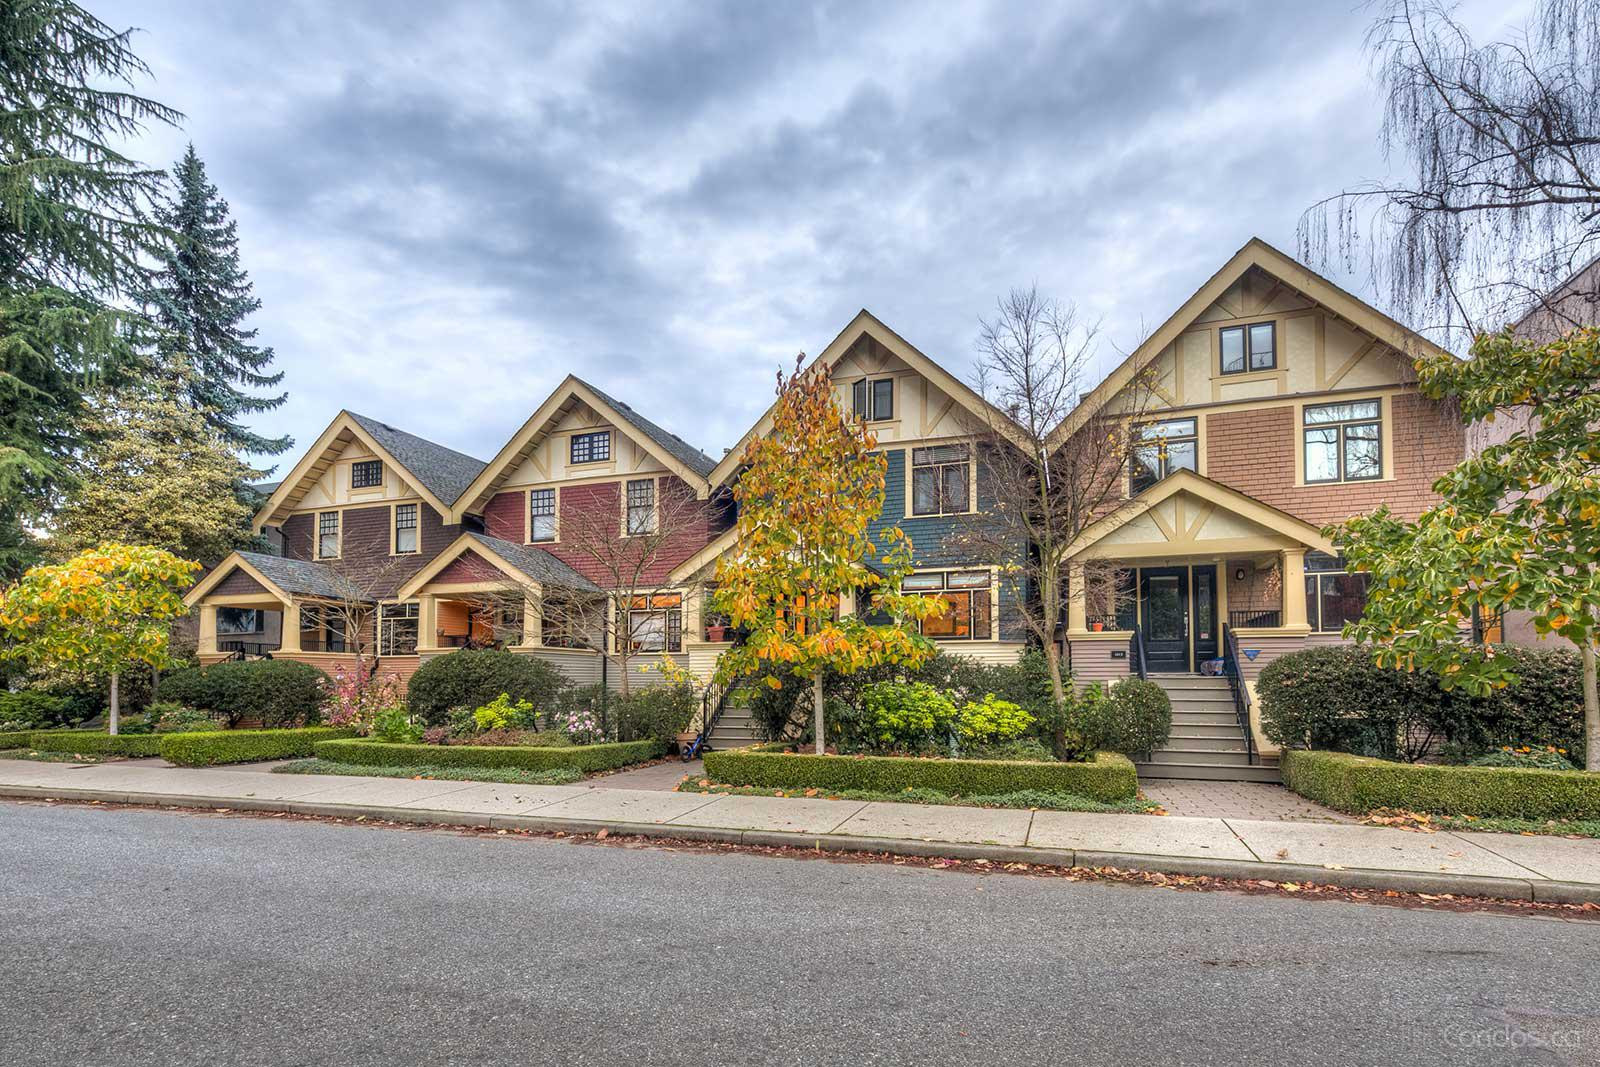 South Granville Townhomes at 1425 W 11th Ave, Vancouver 0